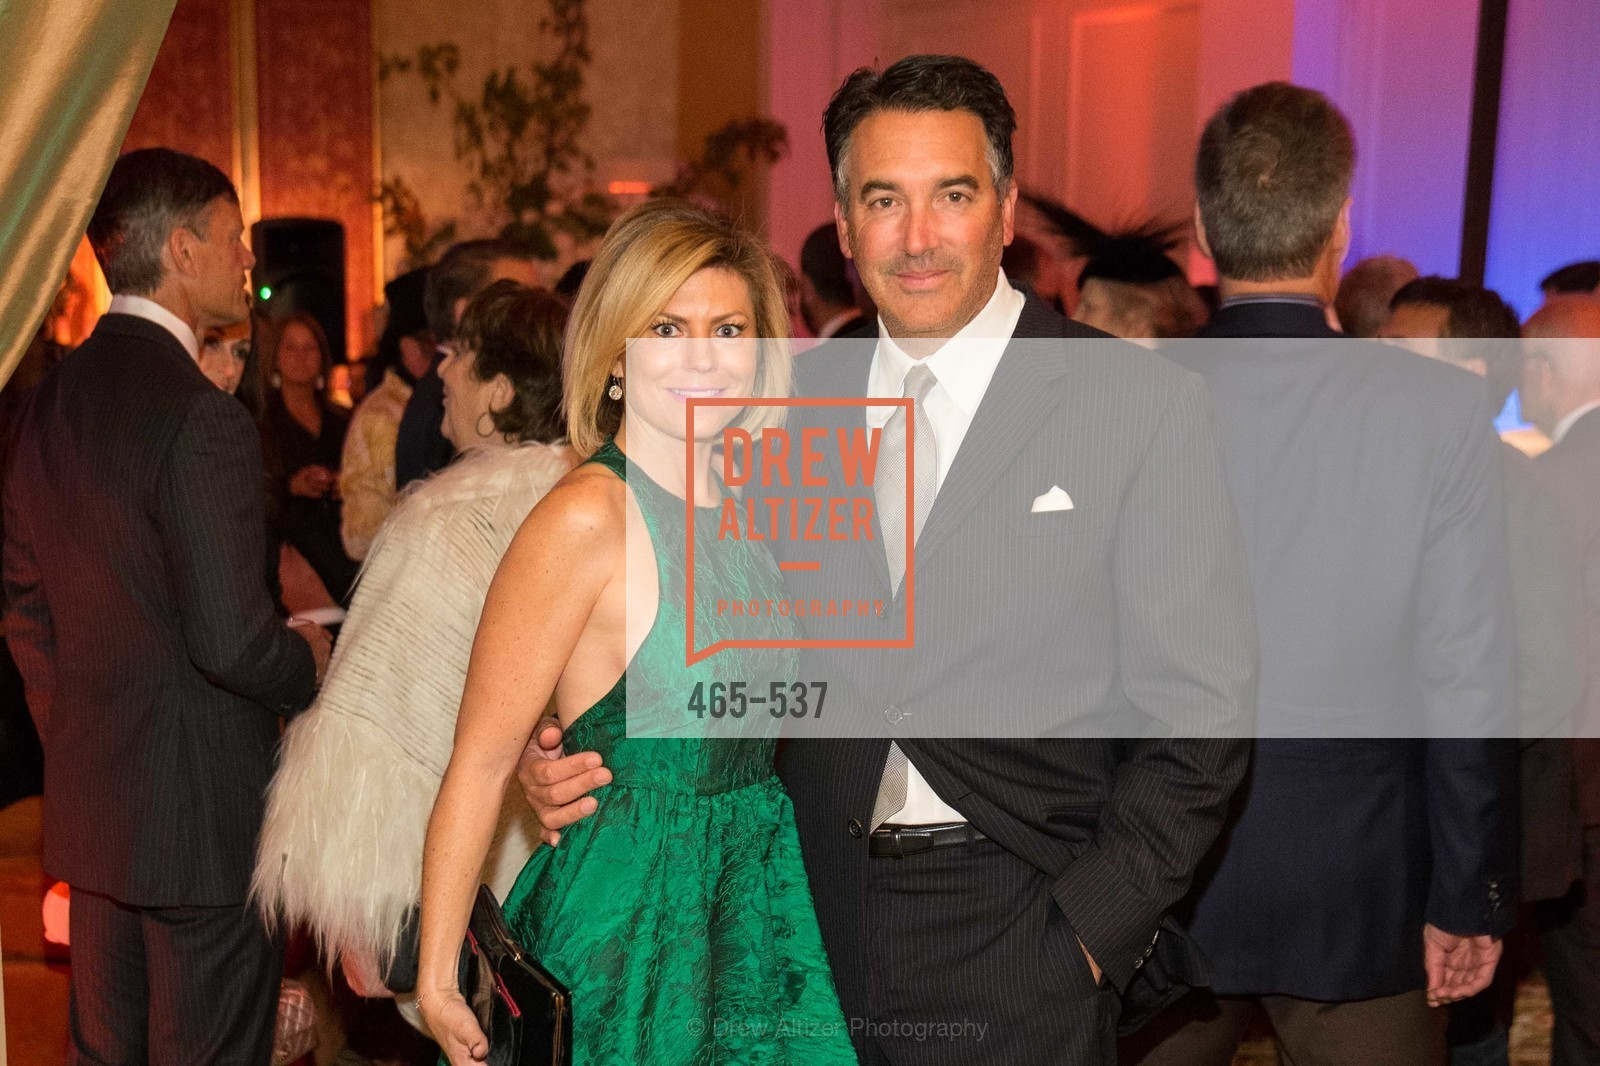 Kimberly Miller, Michael Polenske, TOP OF THE MARK'S 75TH Anniversary Party, US, November 7th, 2014,Drew Altizer, Drew Altizer Photography, full-service event agency, private events, San Francisco photographer, photographer California